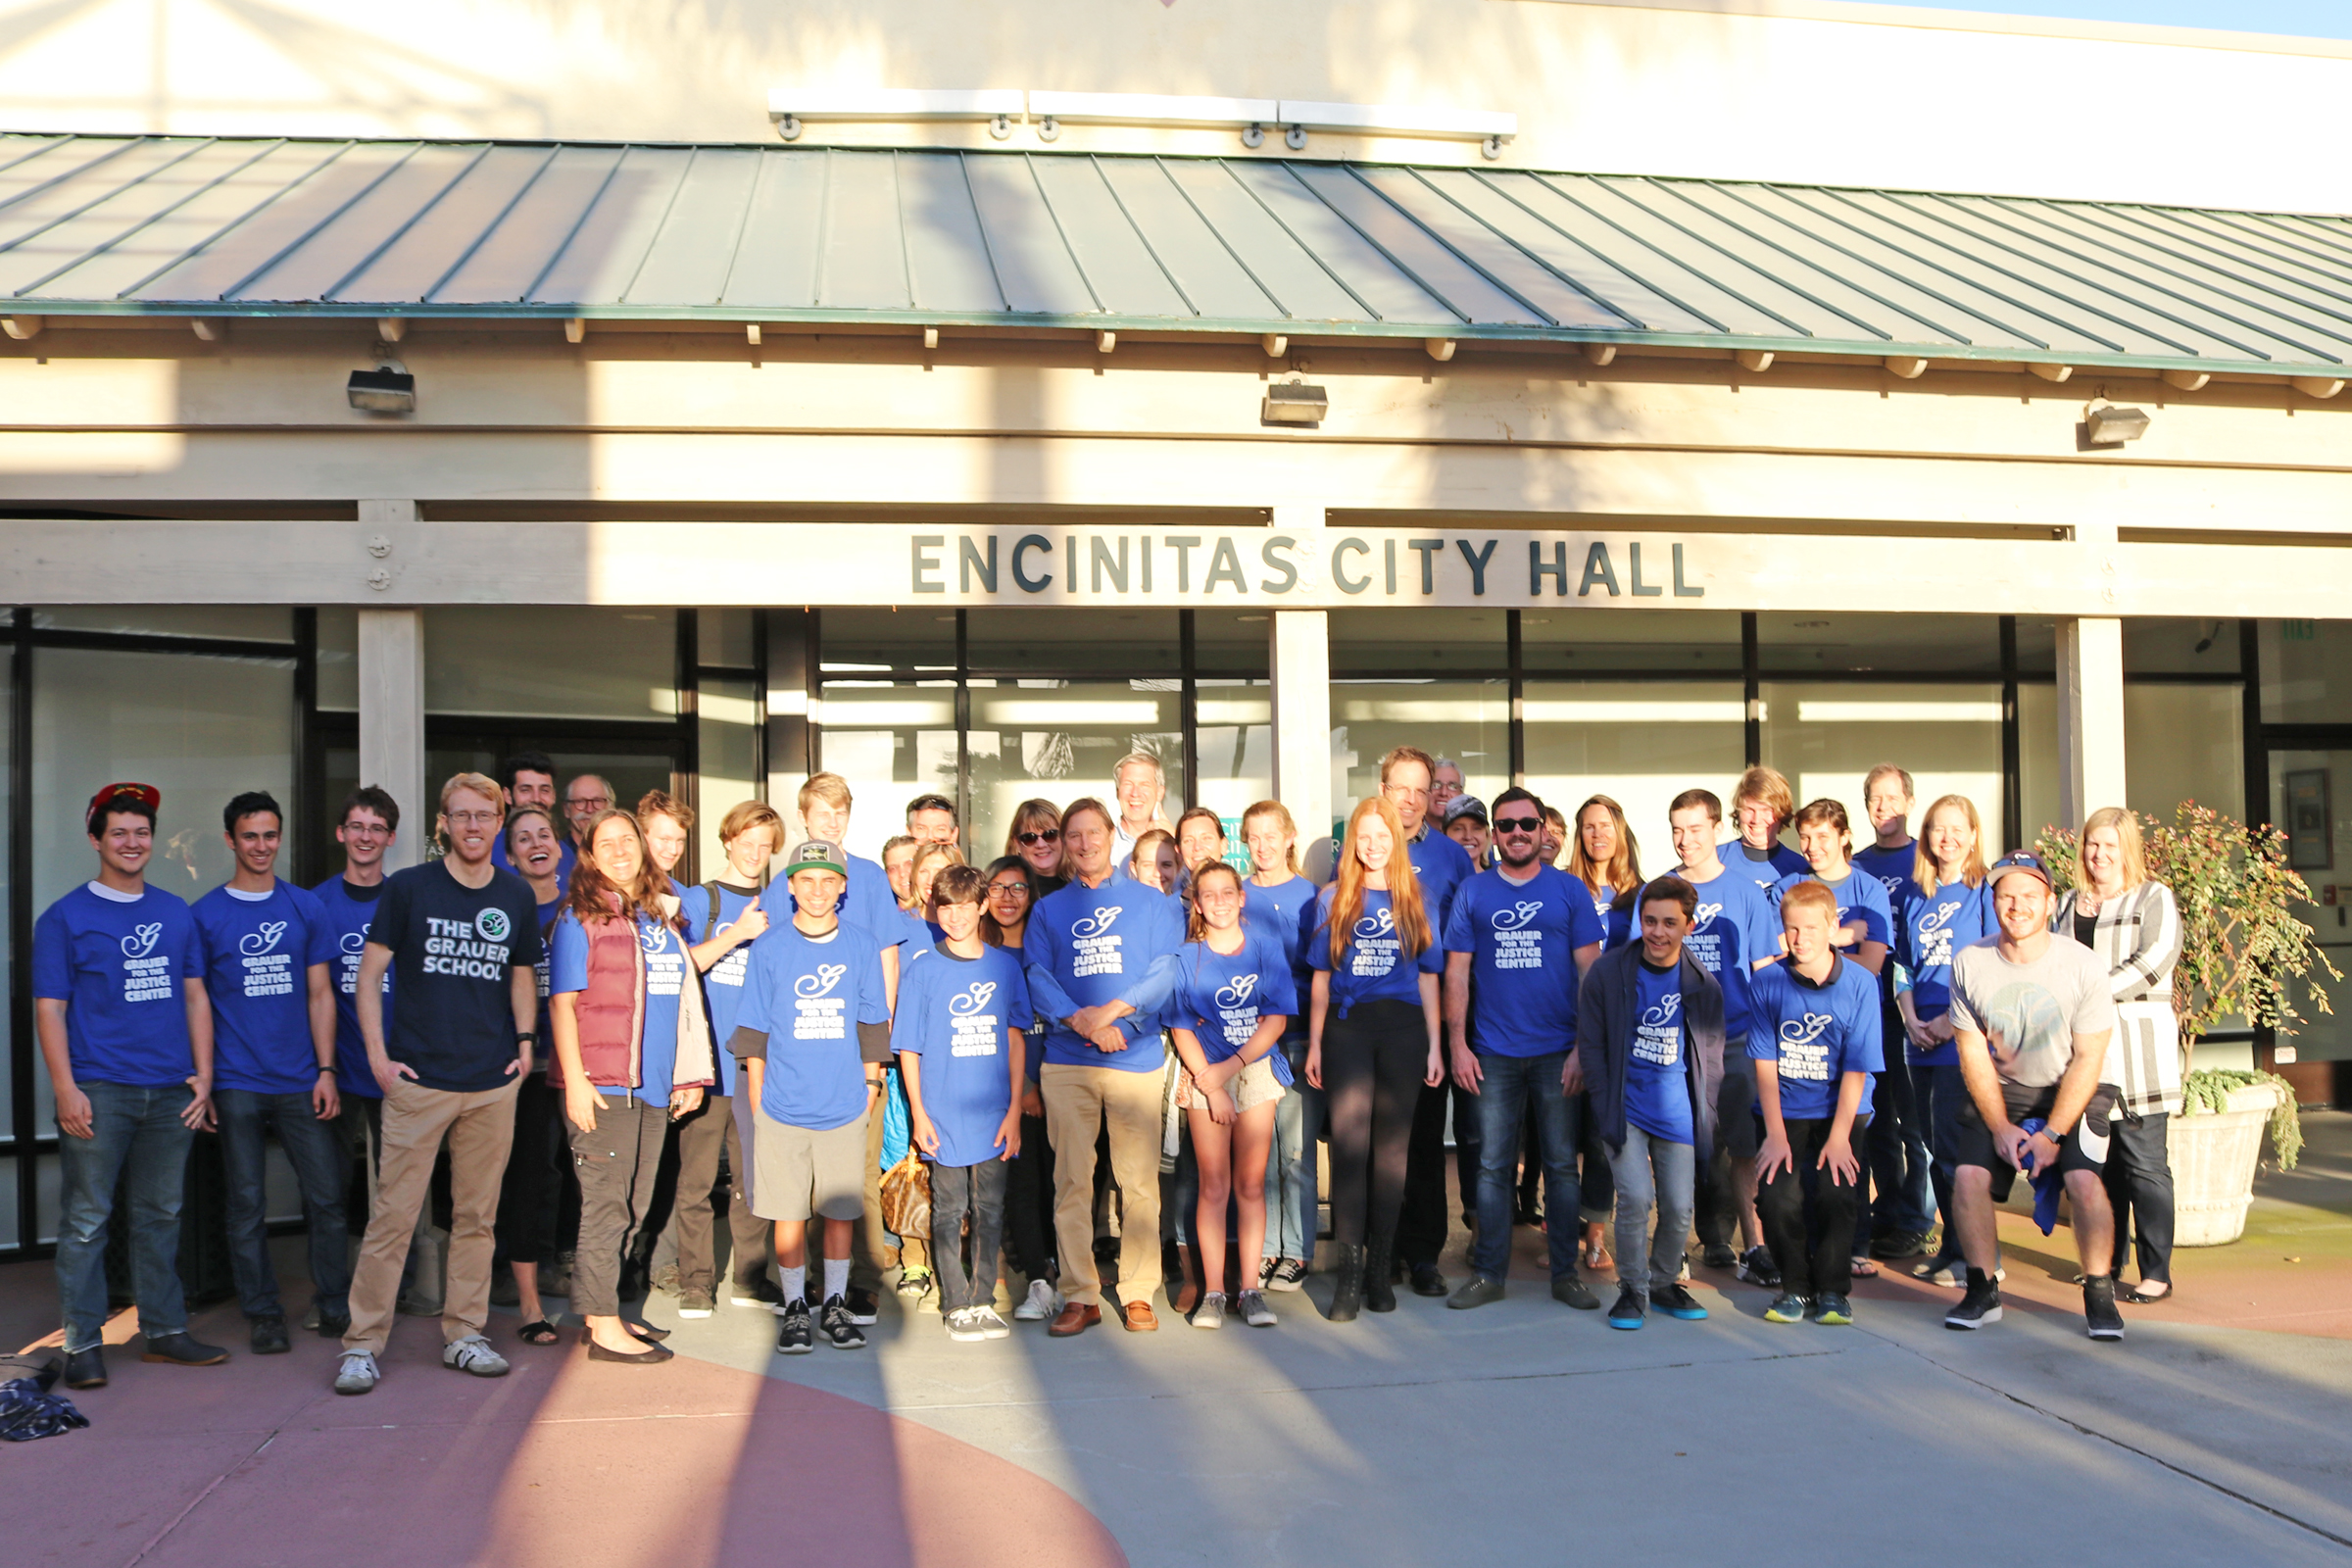 Grauer School community members outside of Encinitas City Hall